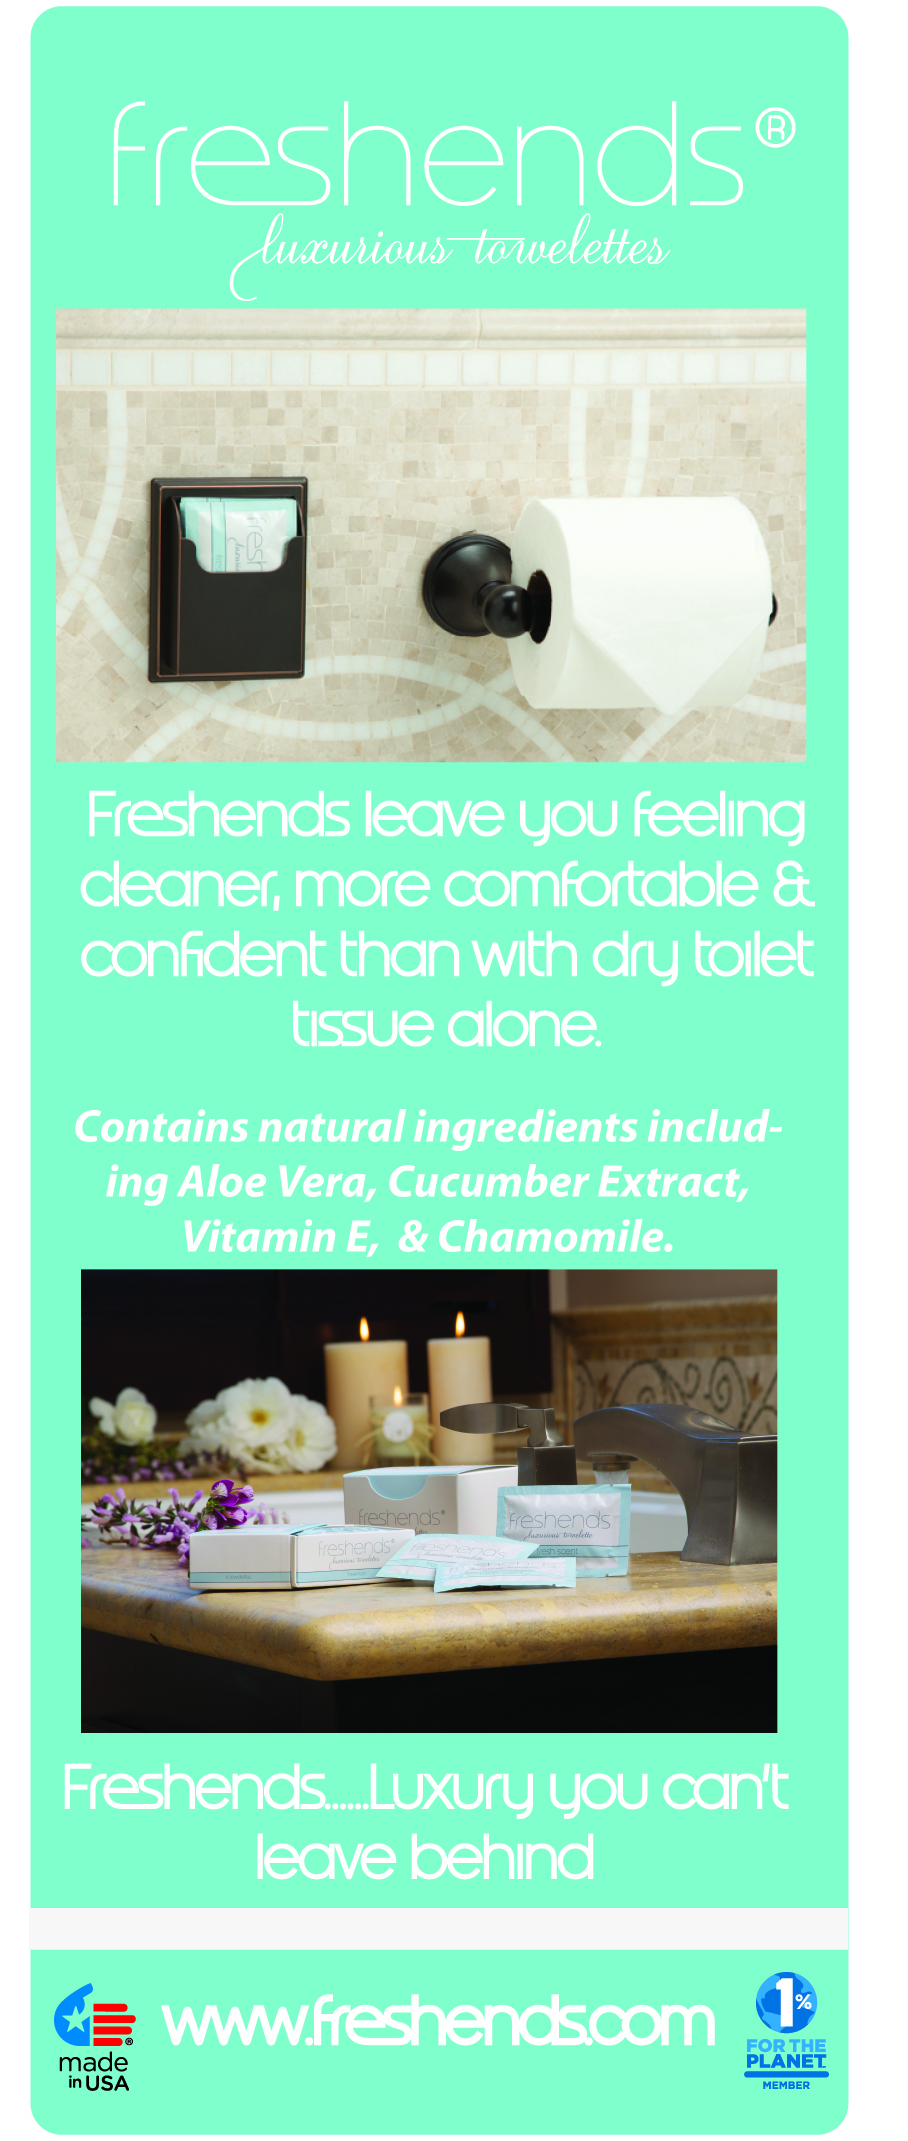 Freshends Luxurious Towelettes